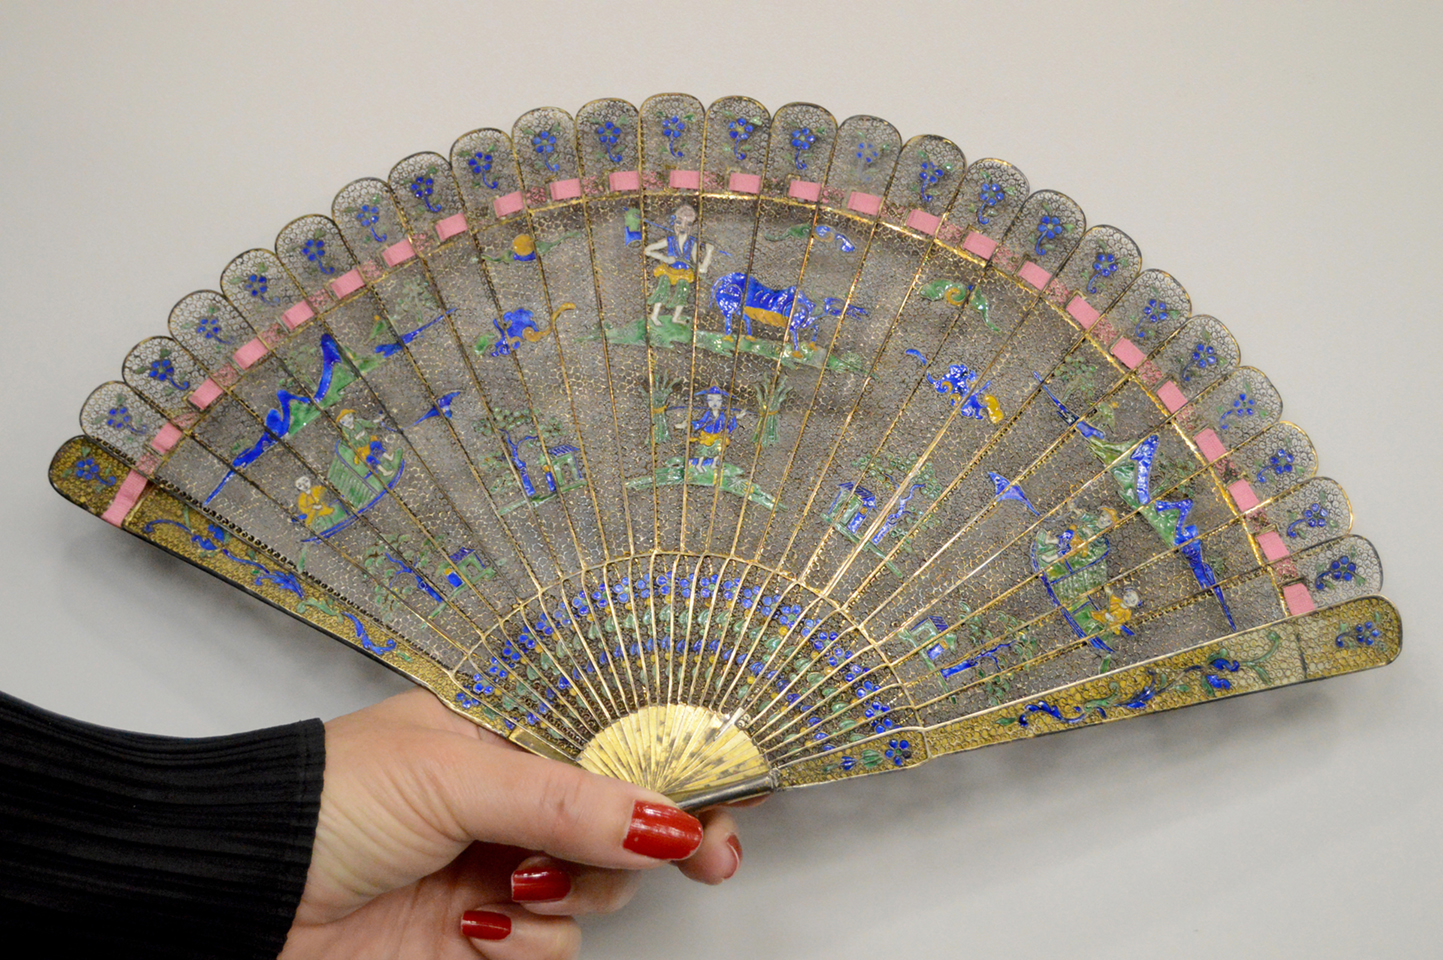 Dealer Cristina Ortega shows off an early Nineteenth Century filigree fan,<br>Chinese Export, at Sinapango, Paris